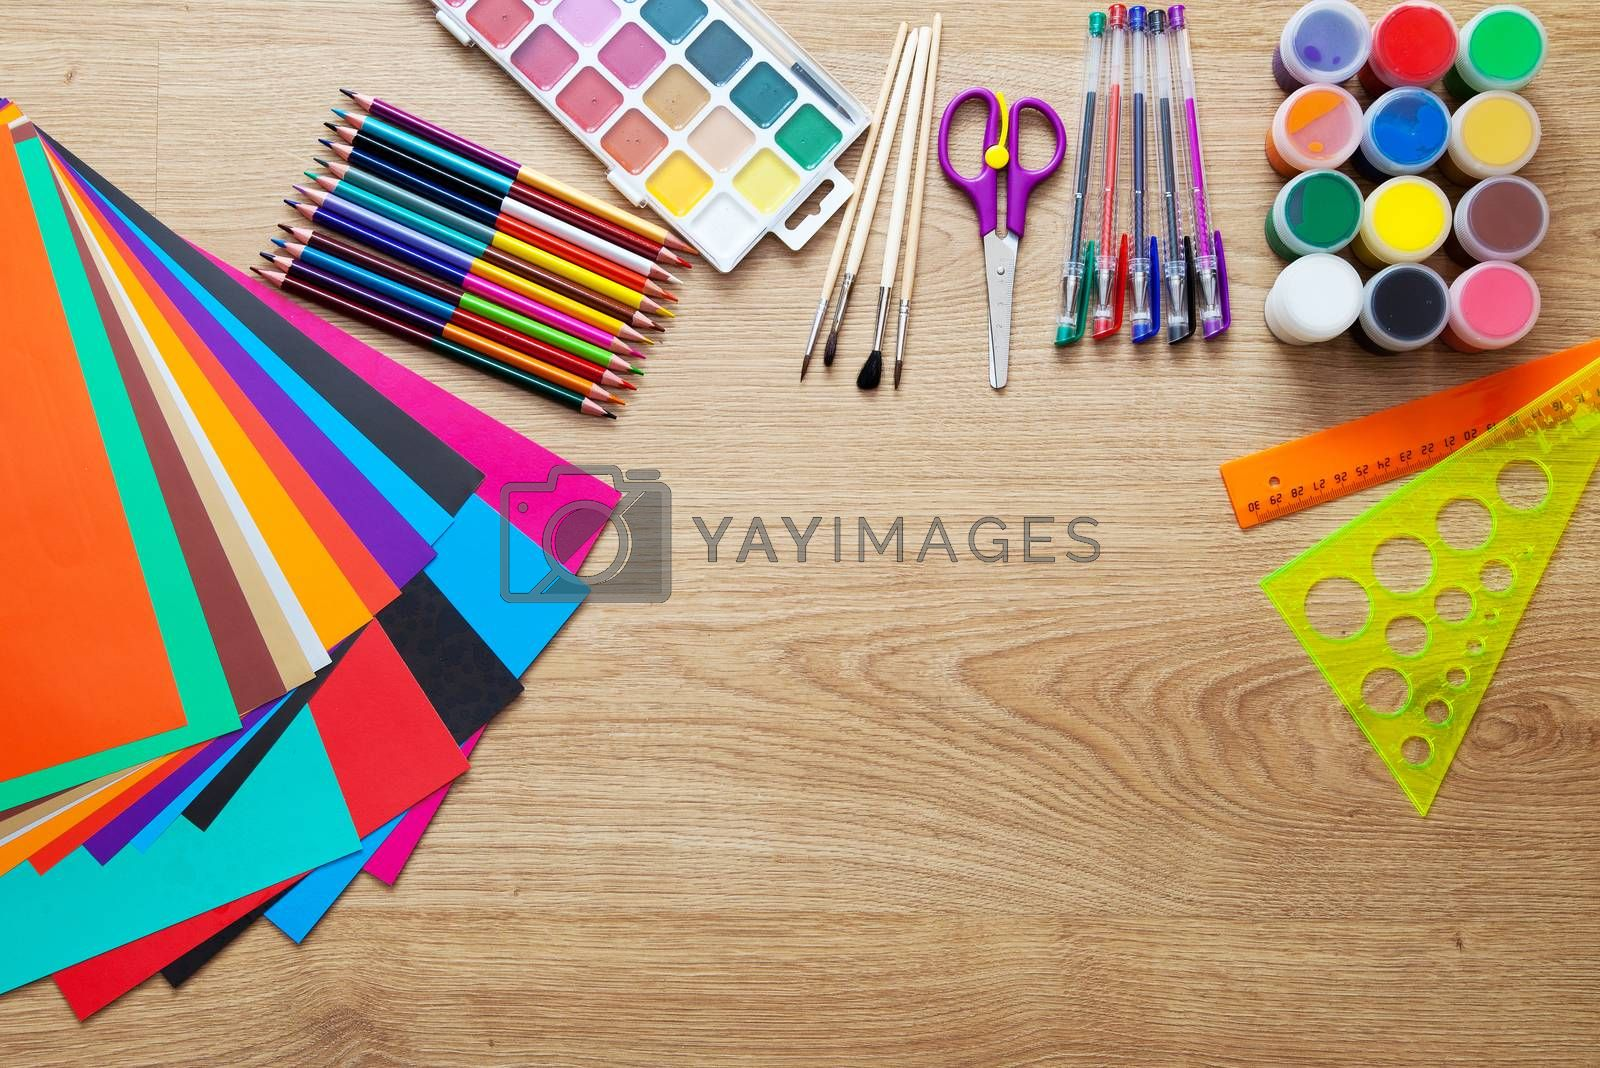 set of school supplies with pencils, paint, pens, paper, scissors and rulers on the floor